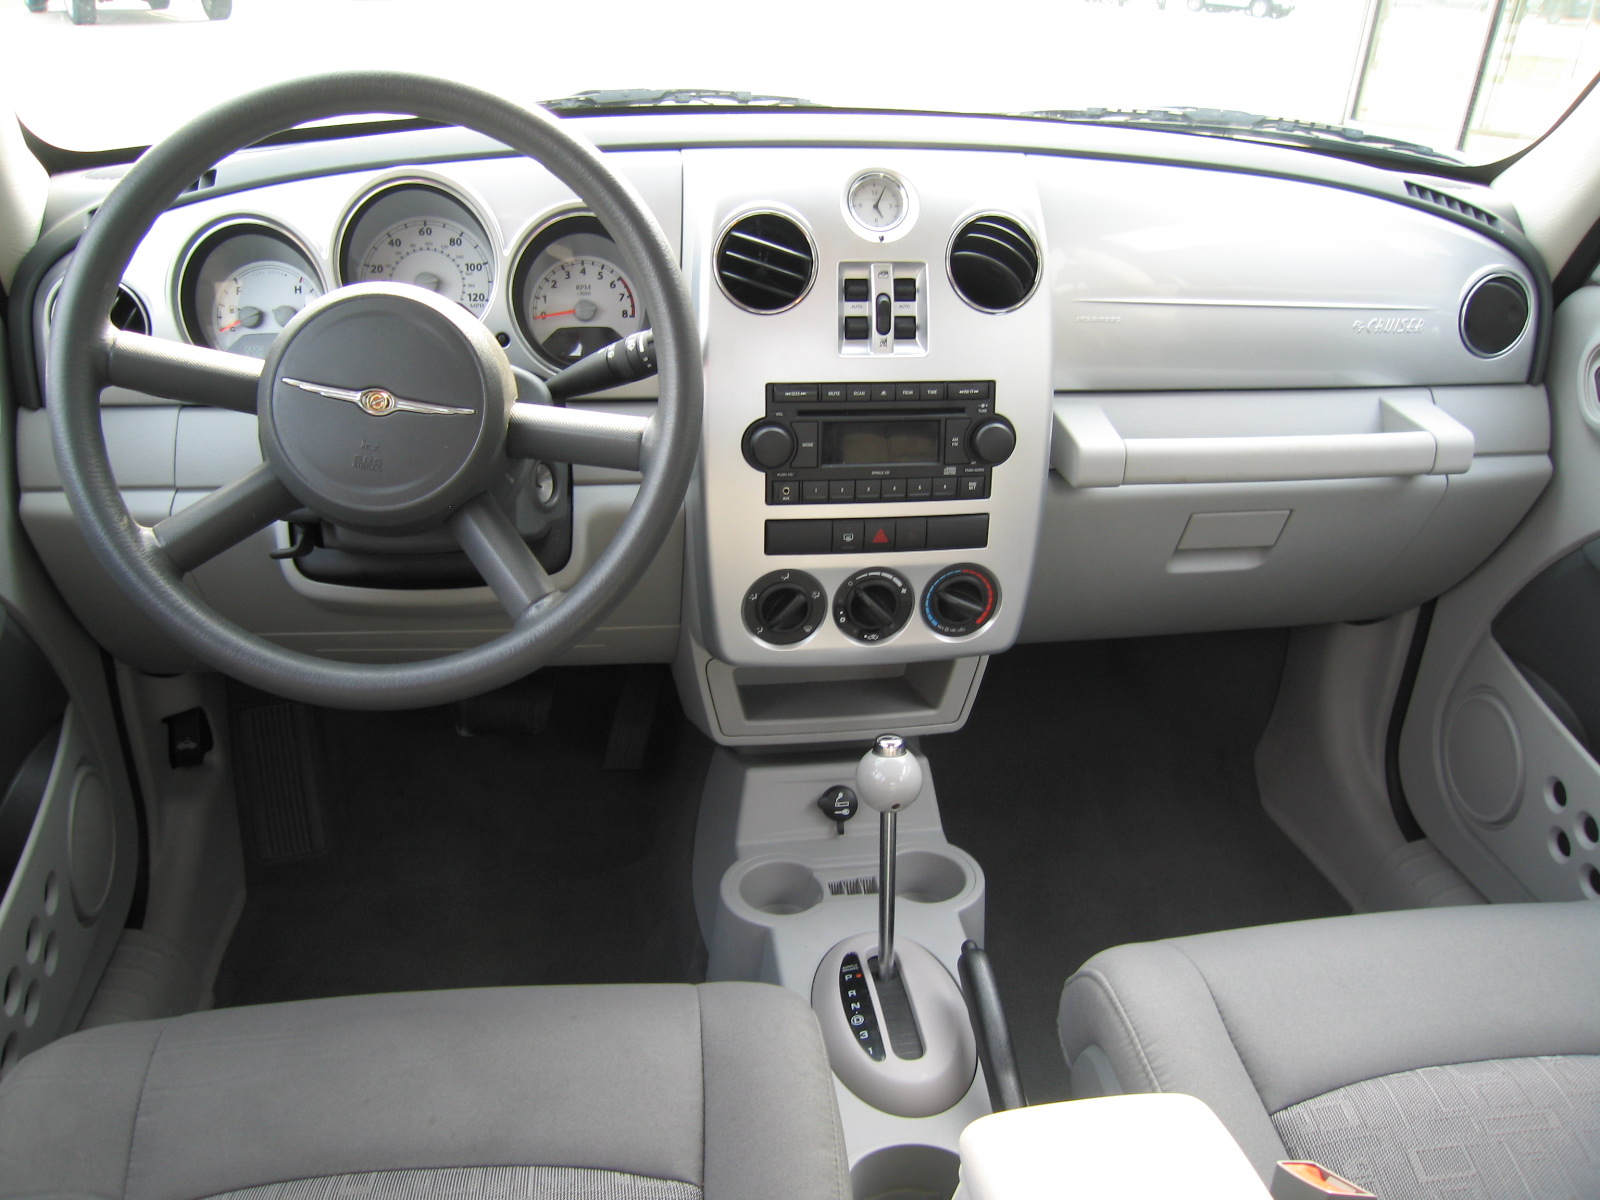 Chrysler PT Cruiser Interior